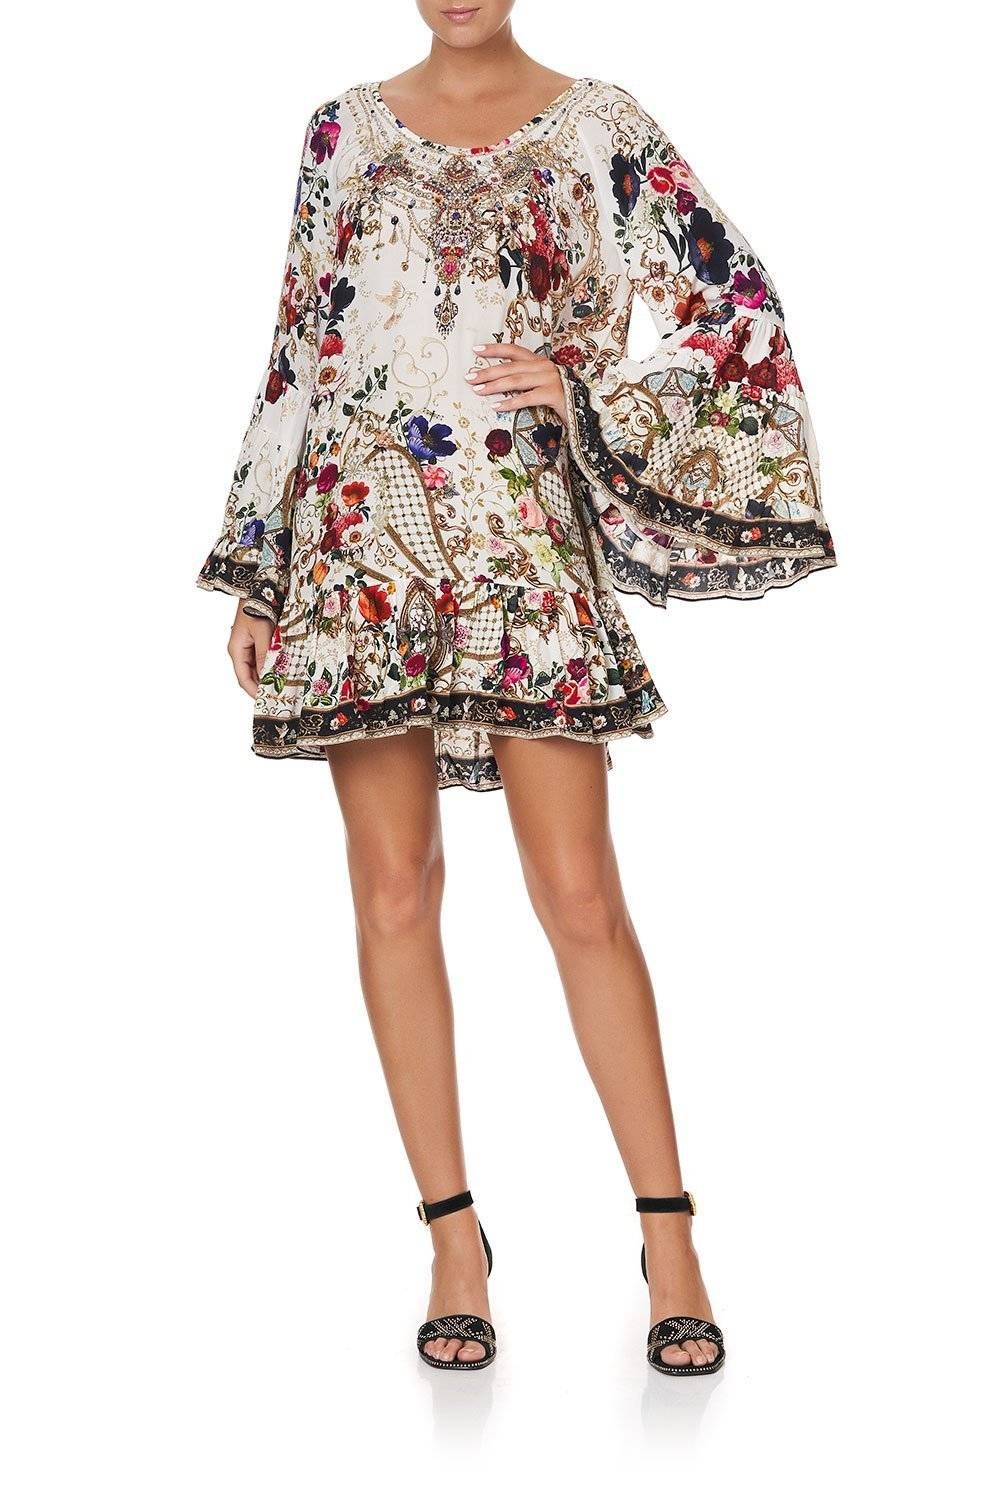 CAMILLA white and pink floral a line dress